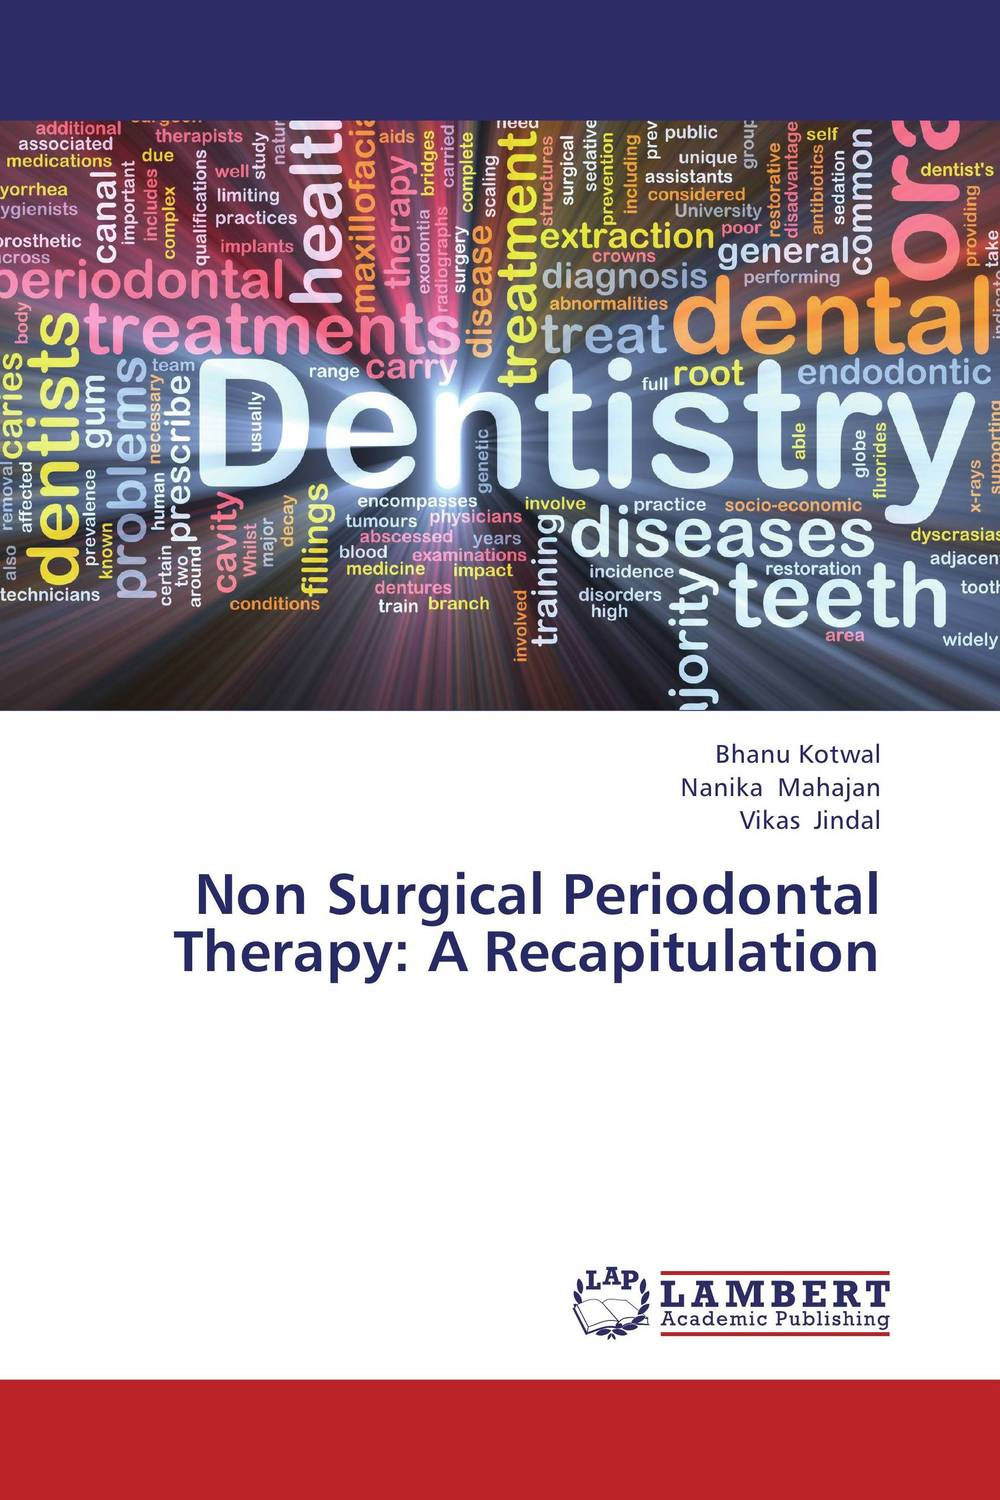 Non Surgical Periodontal Therapy: A Recapitulation chandni monga amarjit singh gill and paramjit kaur khinda periodontal regenerative therapy